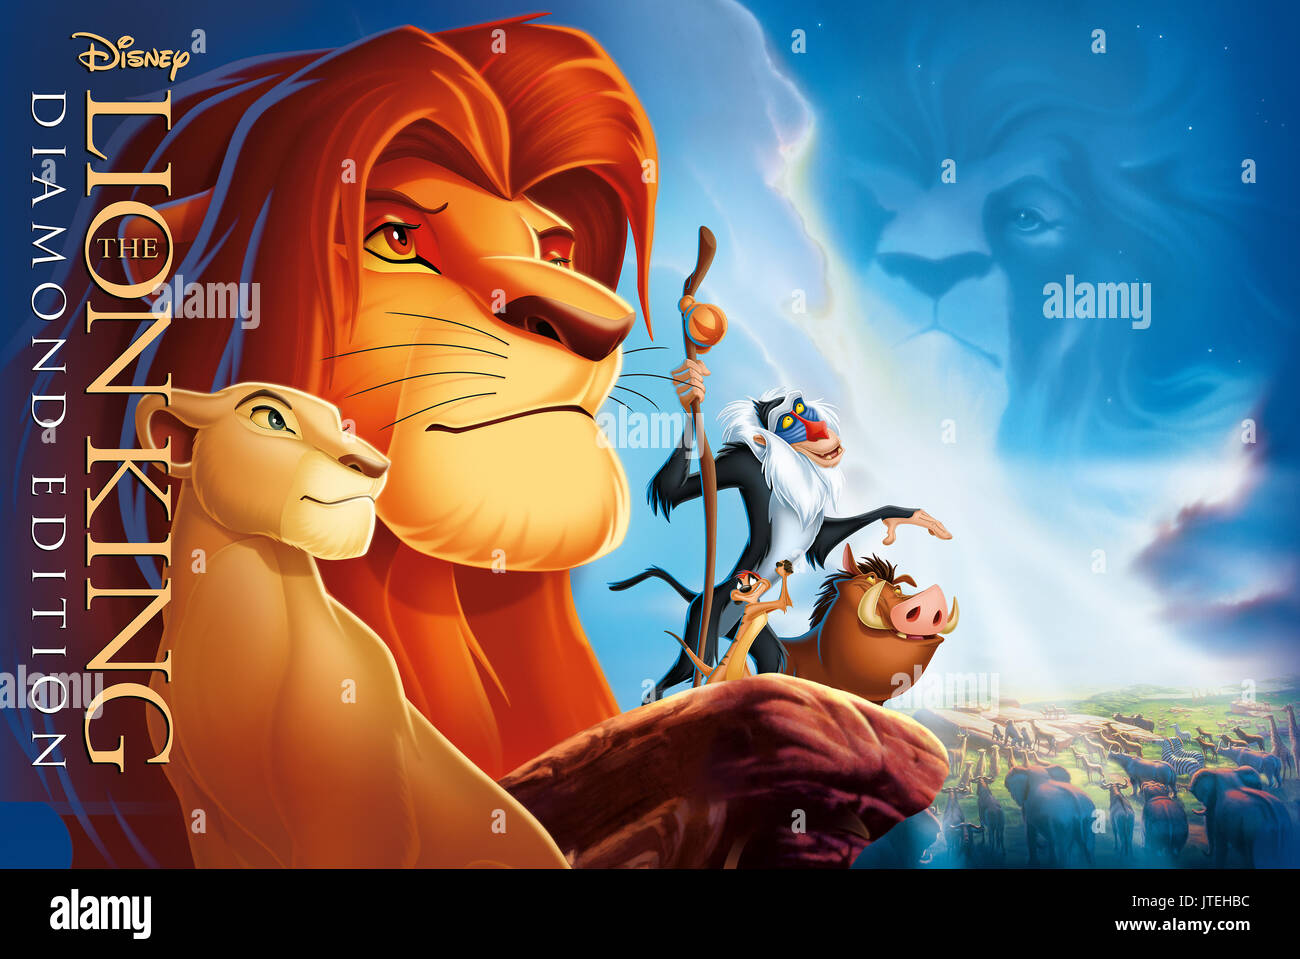 Lion King Poster High Resolution Stock Photography And Images Alamy